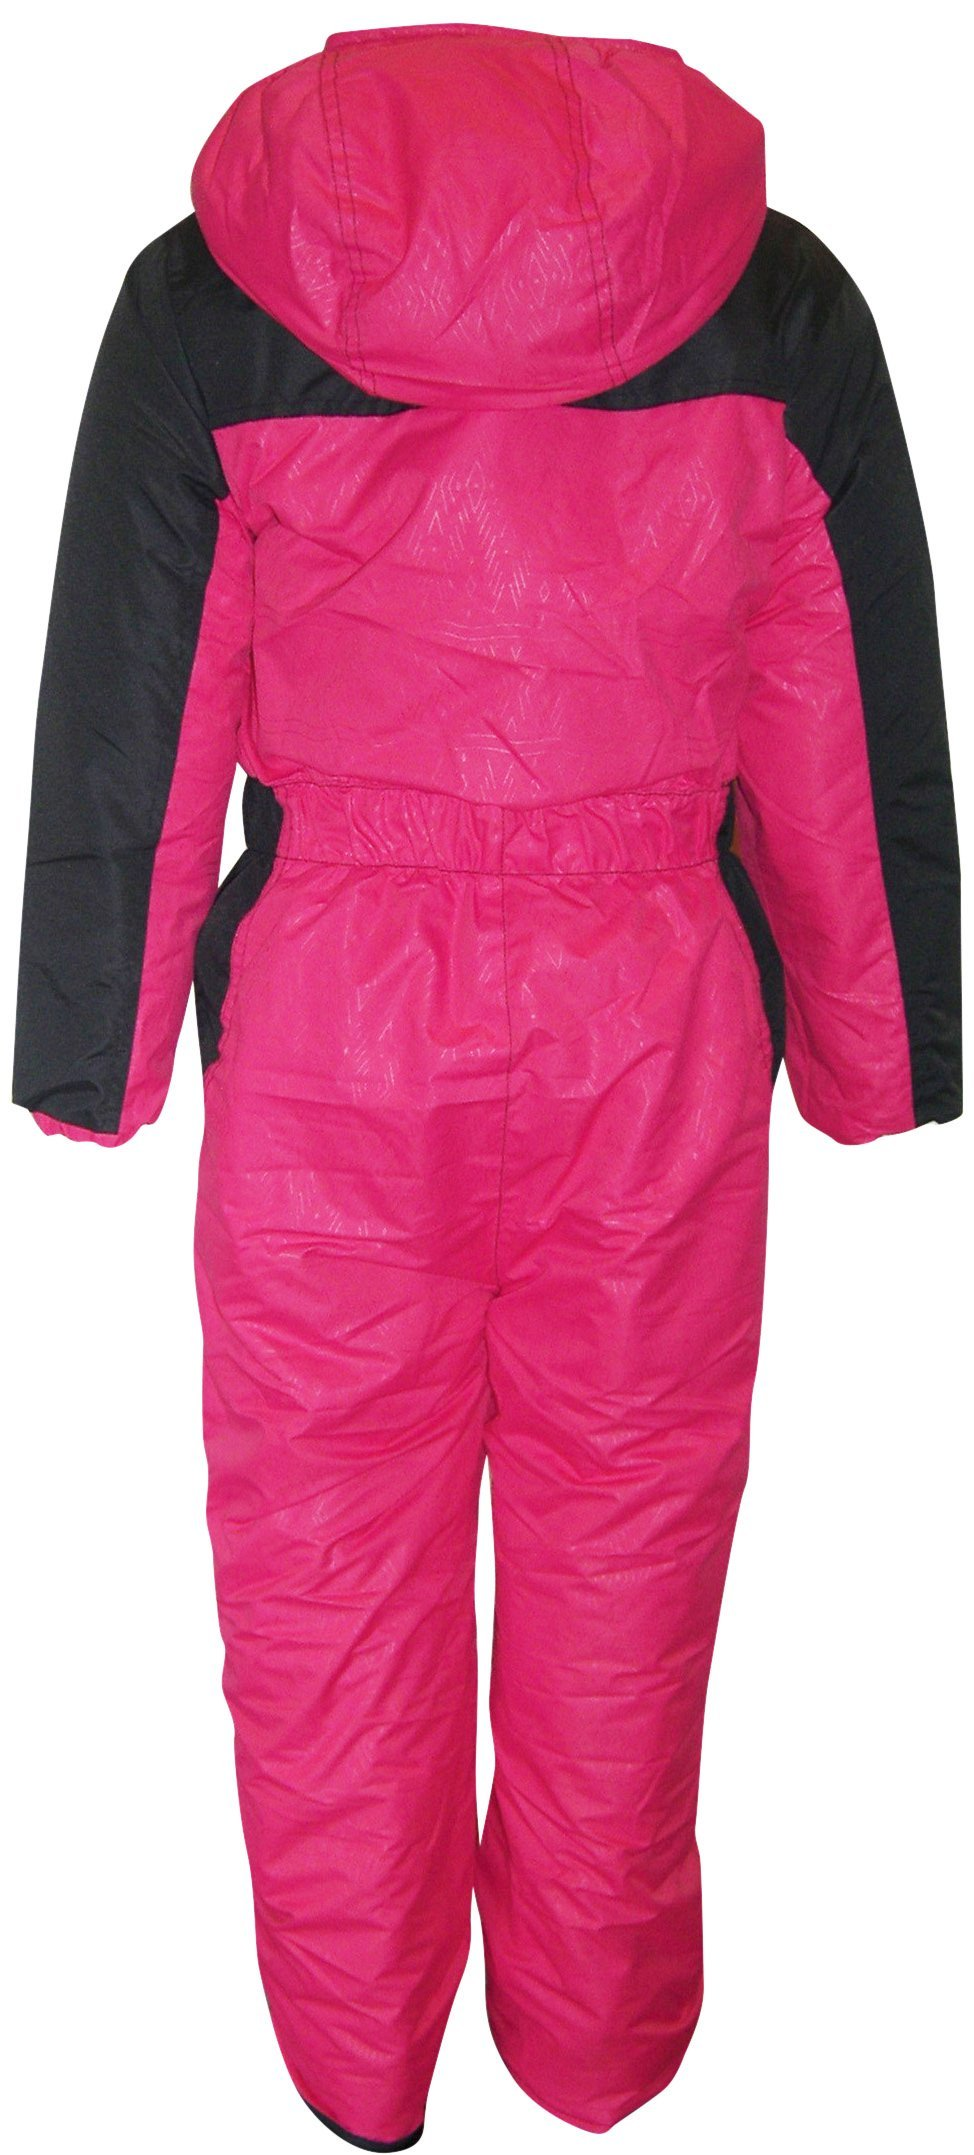 2337e4c99436 Pulse Toddler Girls One Piece Snowsuit Coveralls Insulated 2T 3T 4T ...